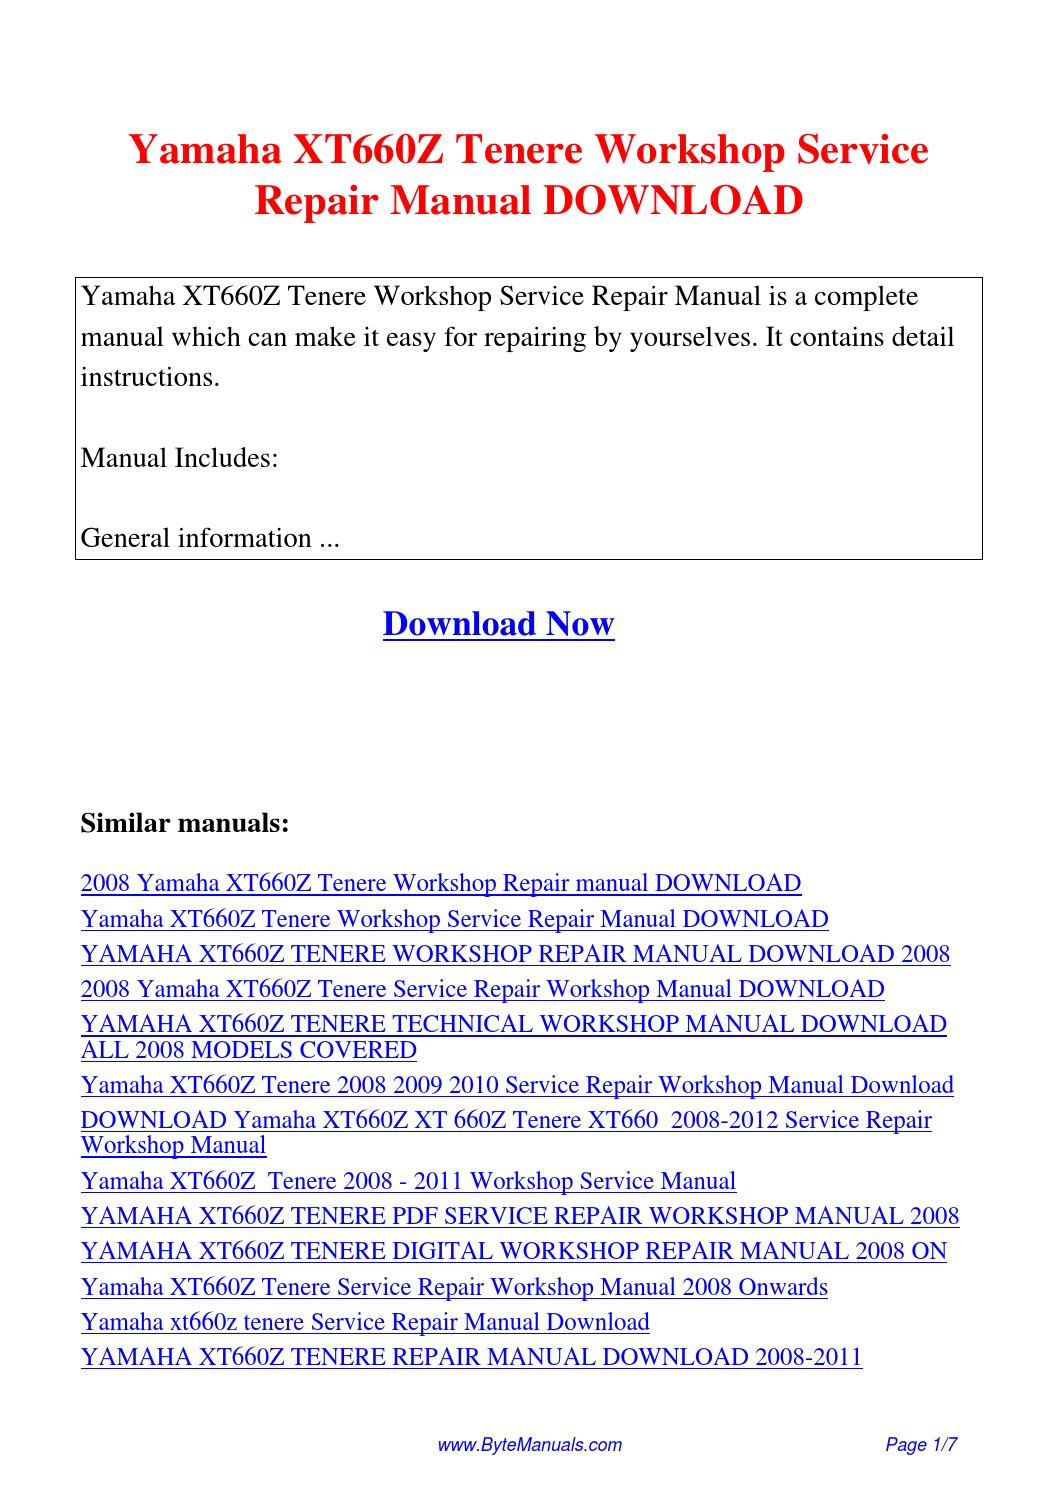 Yamaha XT660Z Tenere Workshop Service Repair Manual.pdf by Ging Tang - issuu